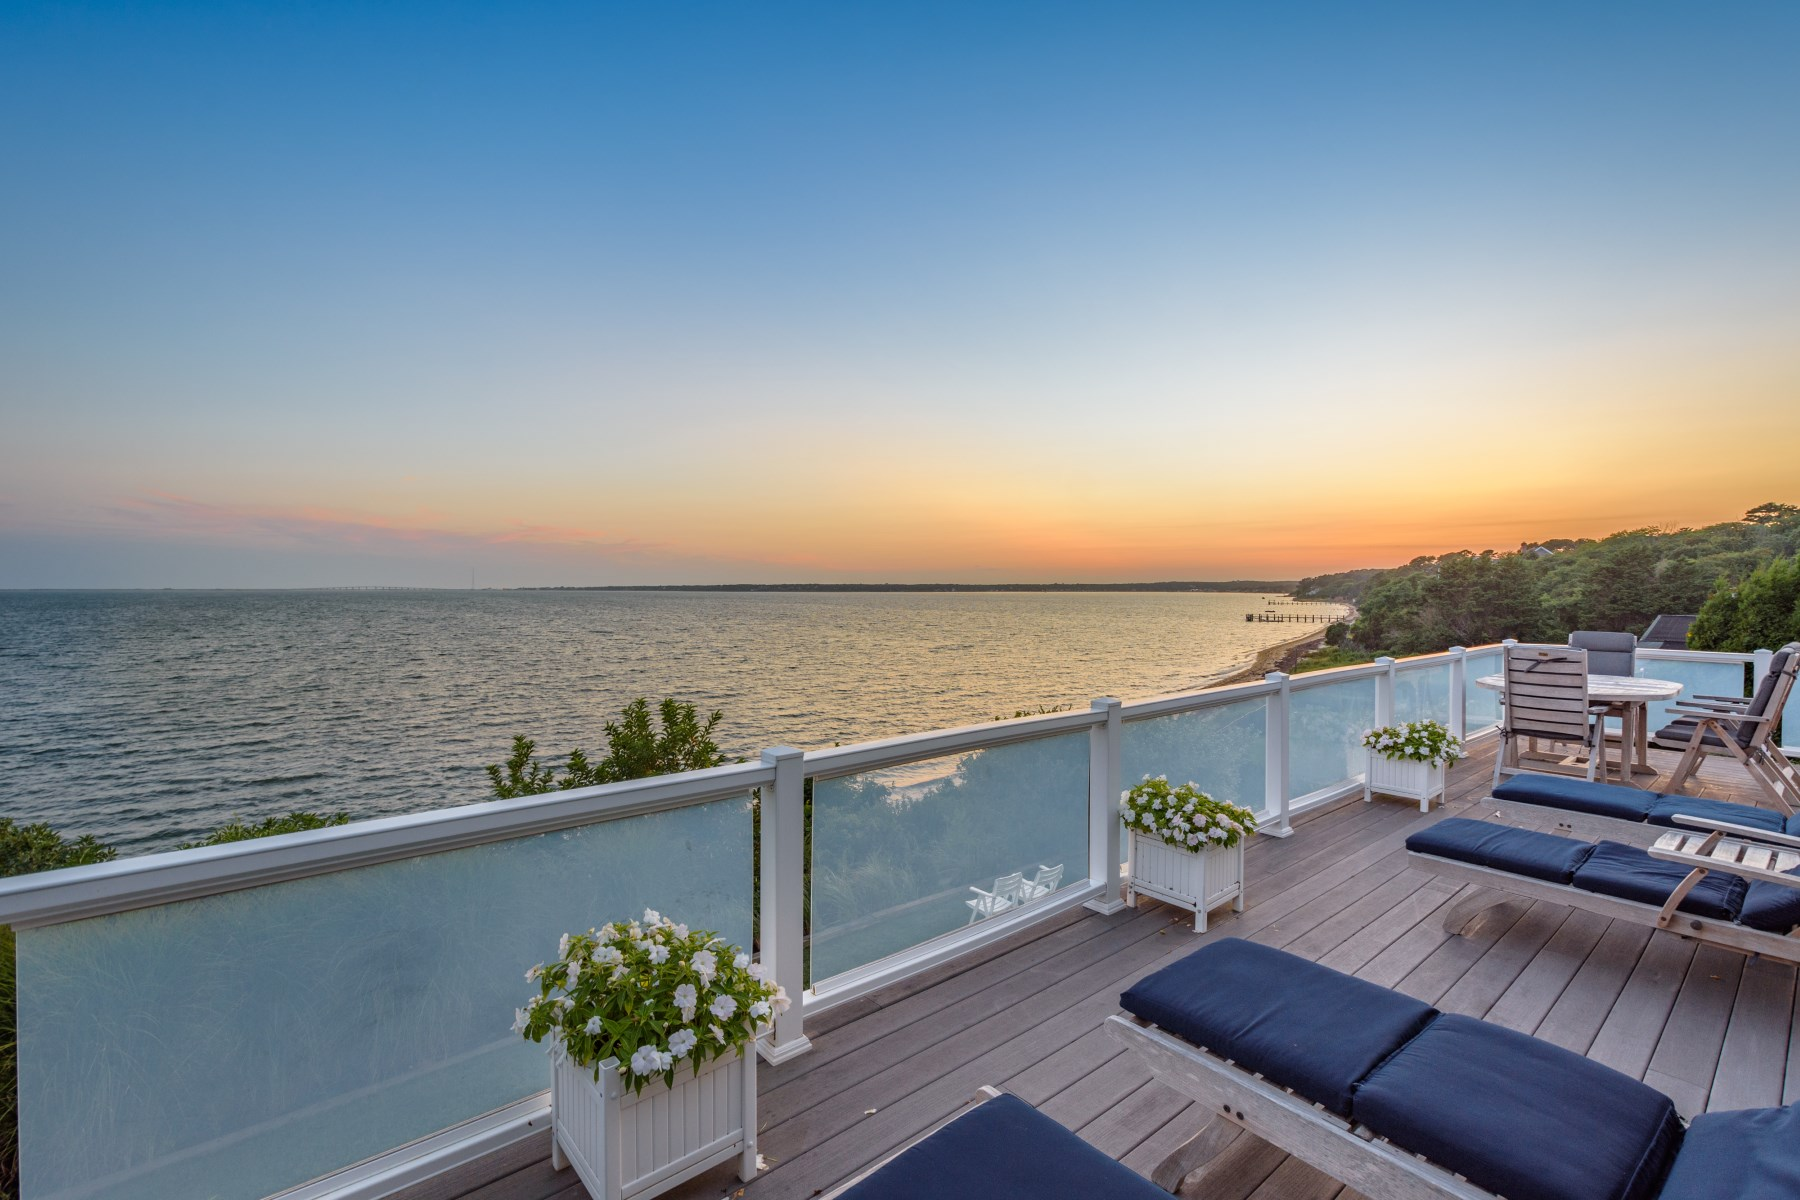 Single Family Home for Rent at Directly on the Bay 16 Oceanview Drive Southampton, New York 11968 United States